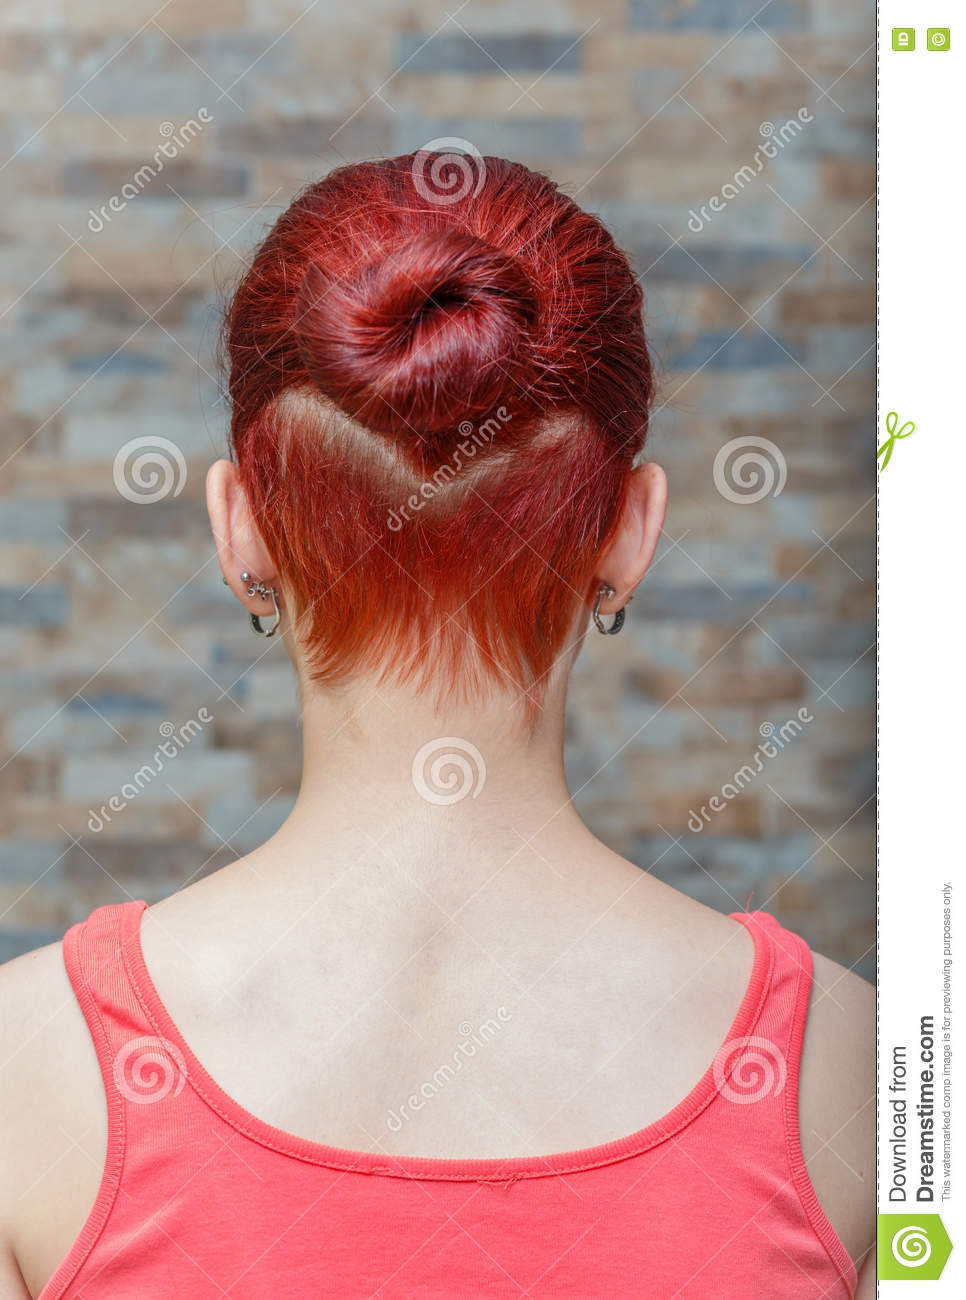 Girl With Hidden Undercut Hair Stock Photo - Image of close